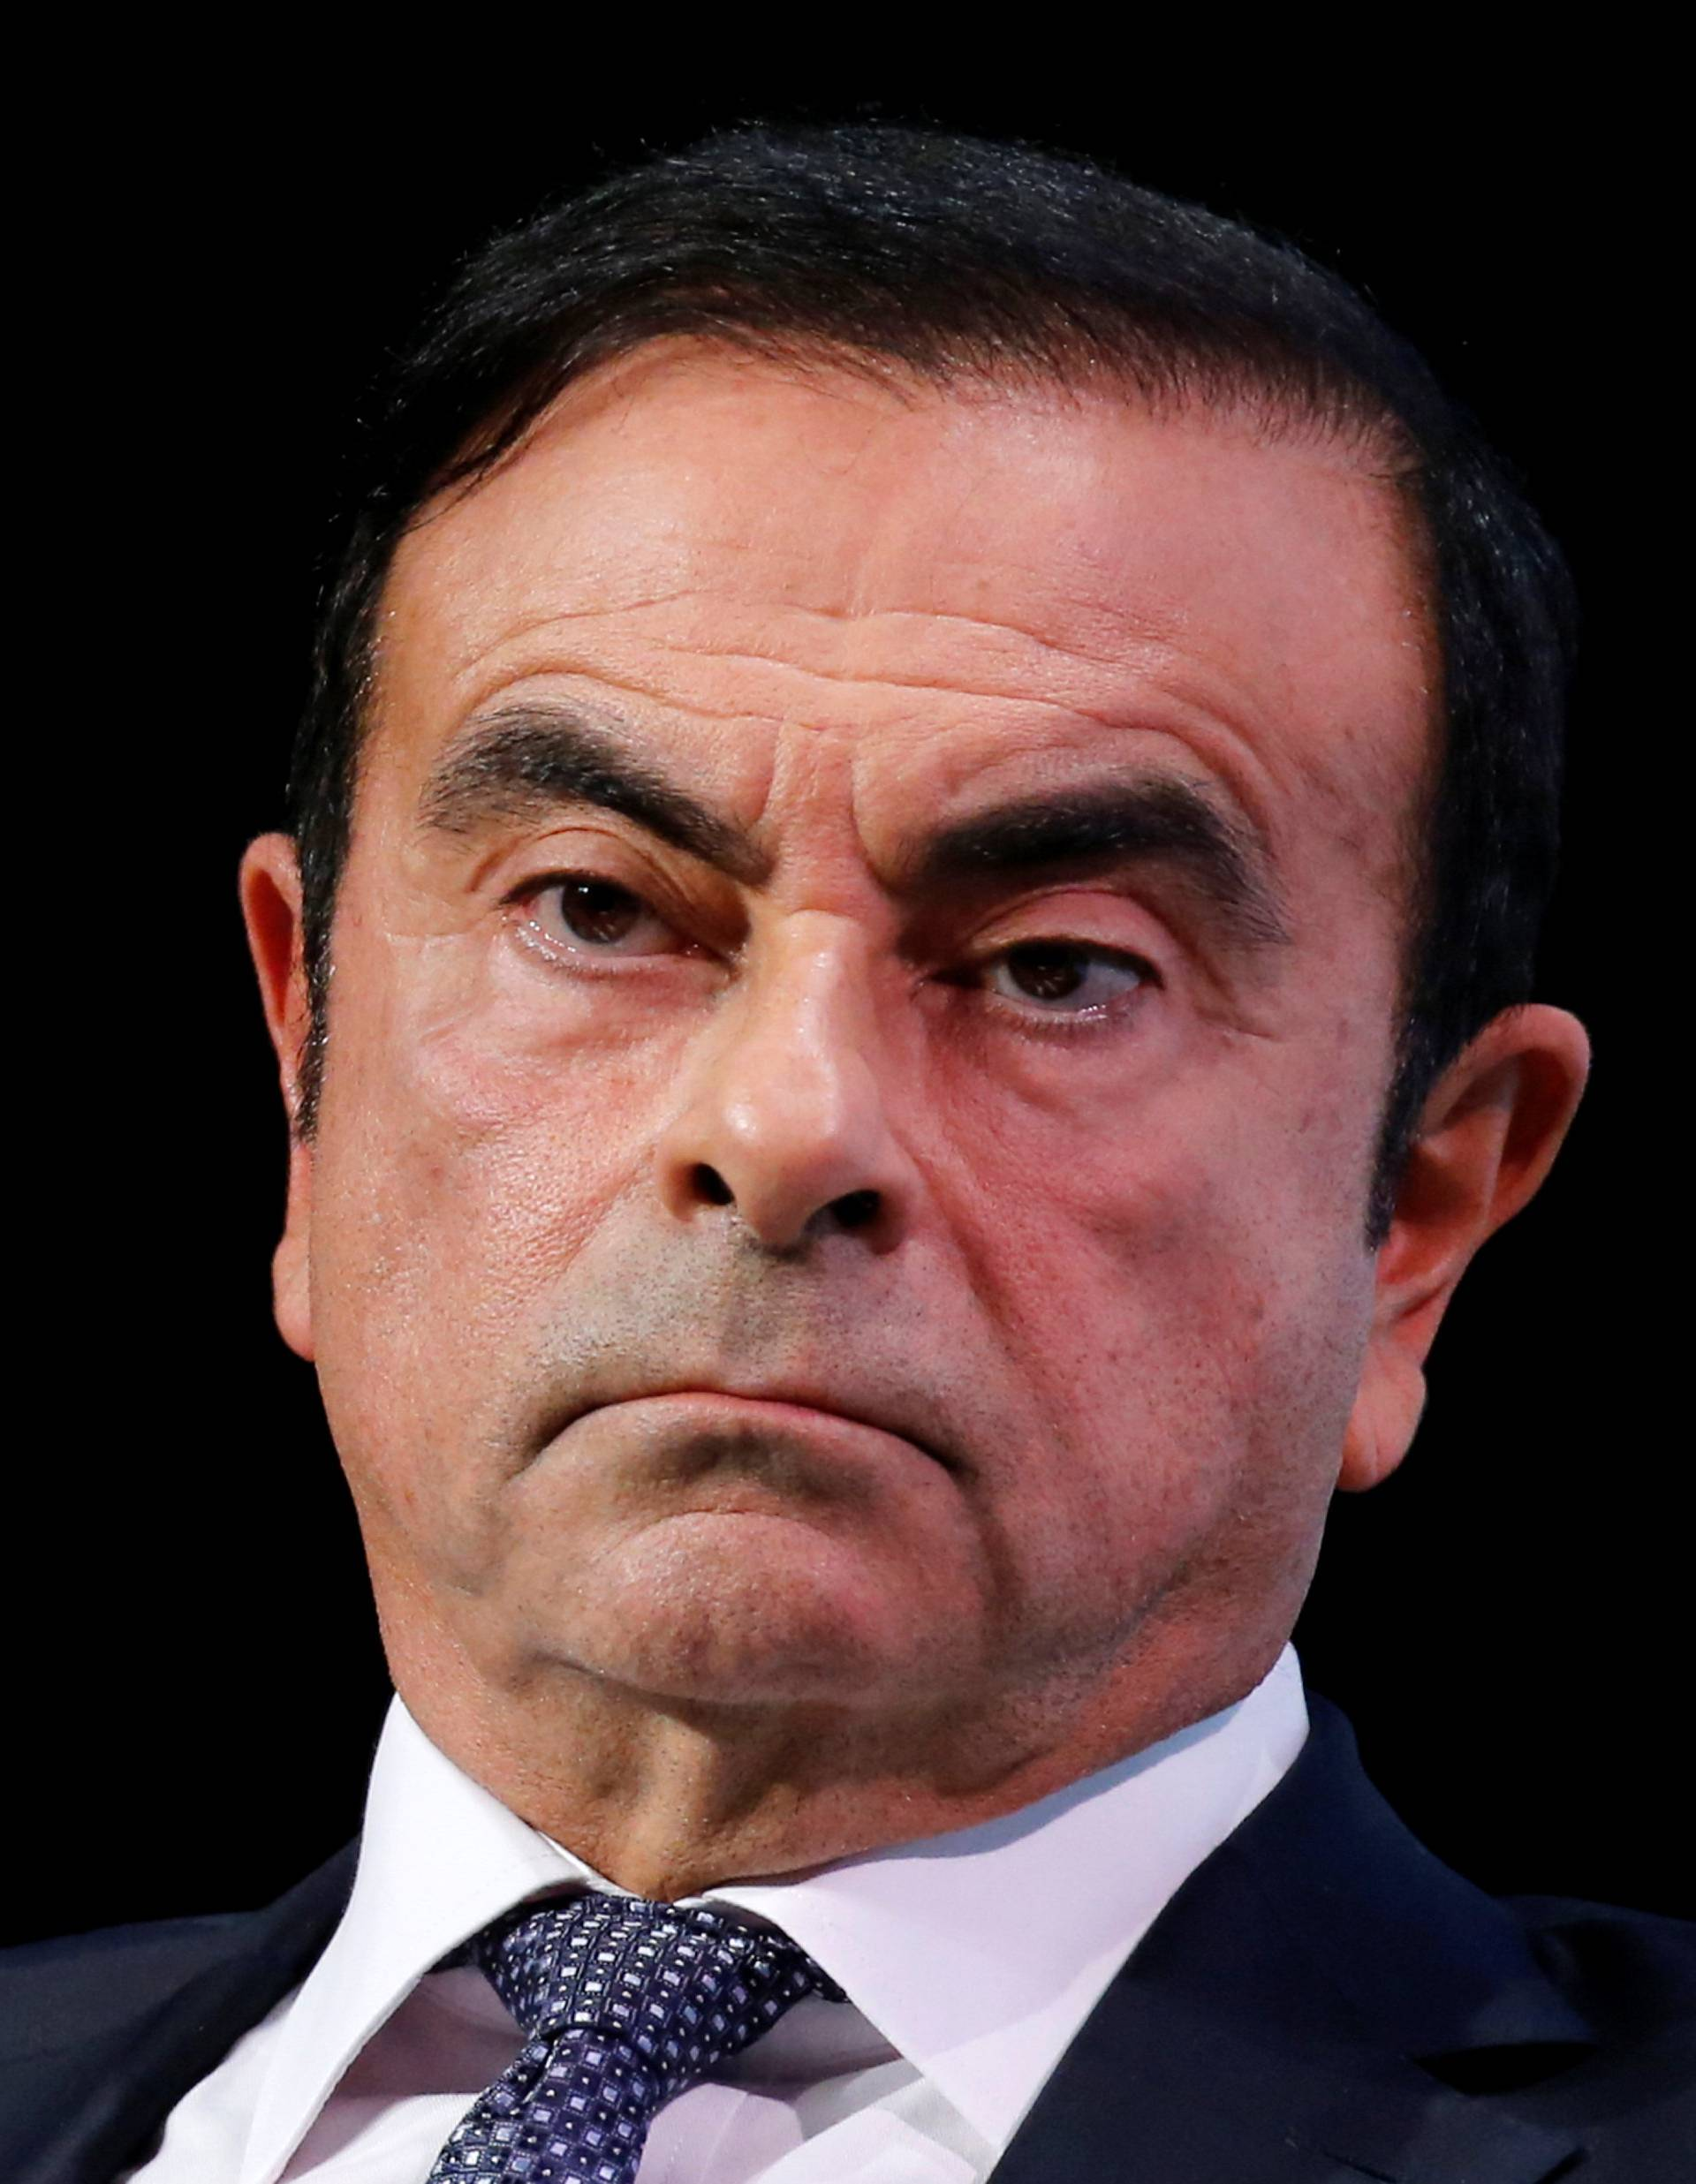 Carlos Ghosn, chairman and CEO of the Renault-Nissan-Mitsubishi Alliance, attends the Tomorrow In Motion event on the eve of press day at the Paris Auto Show, in Paris